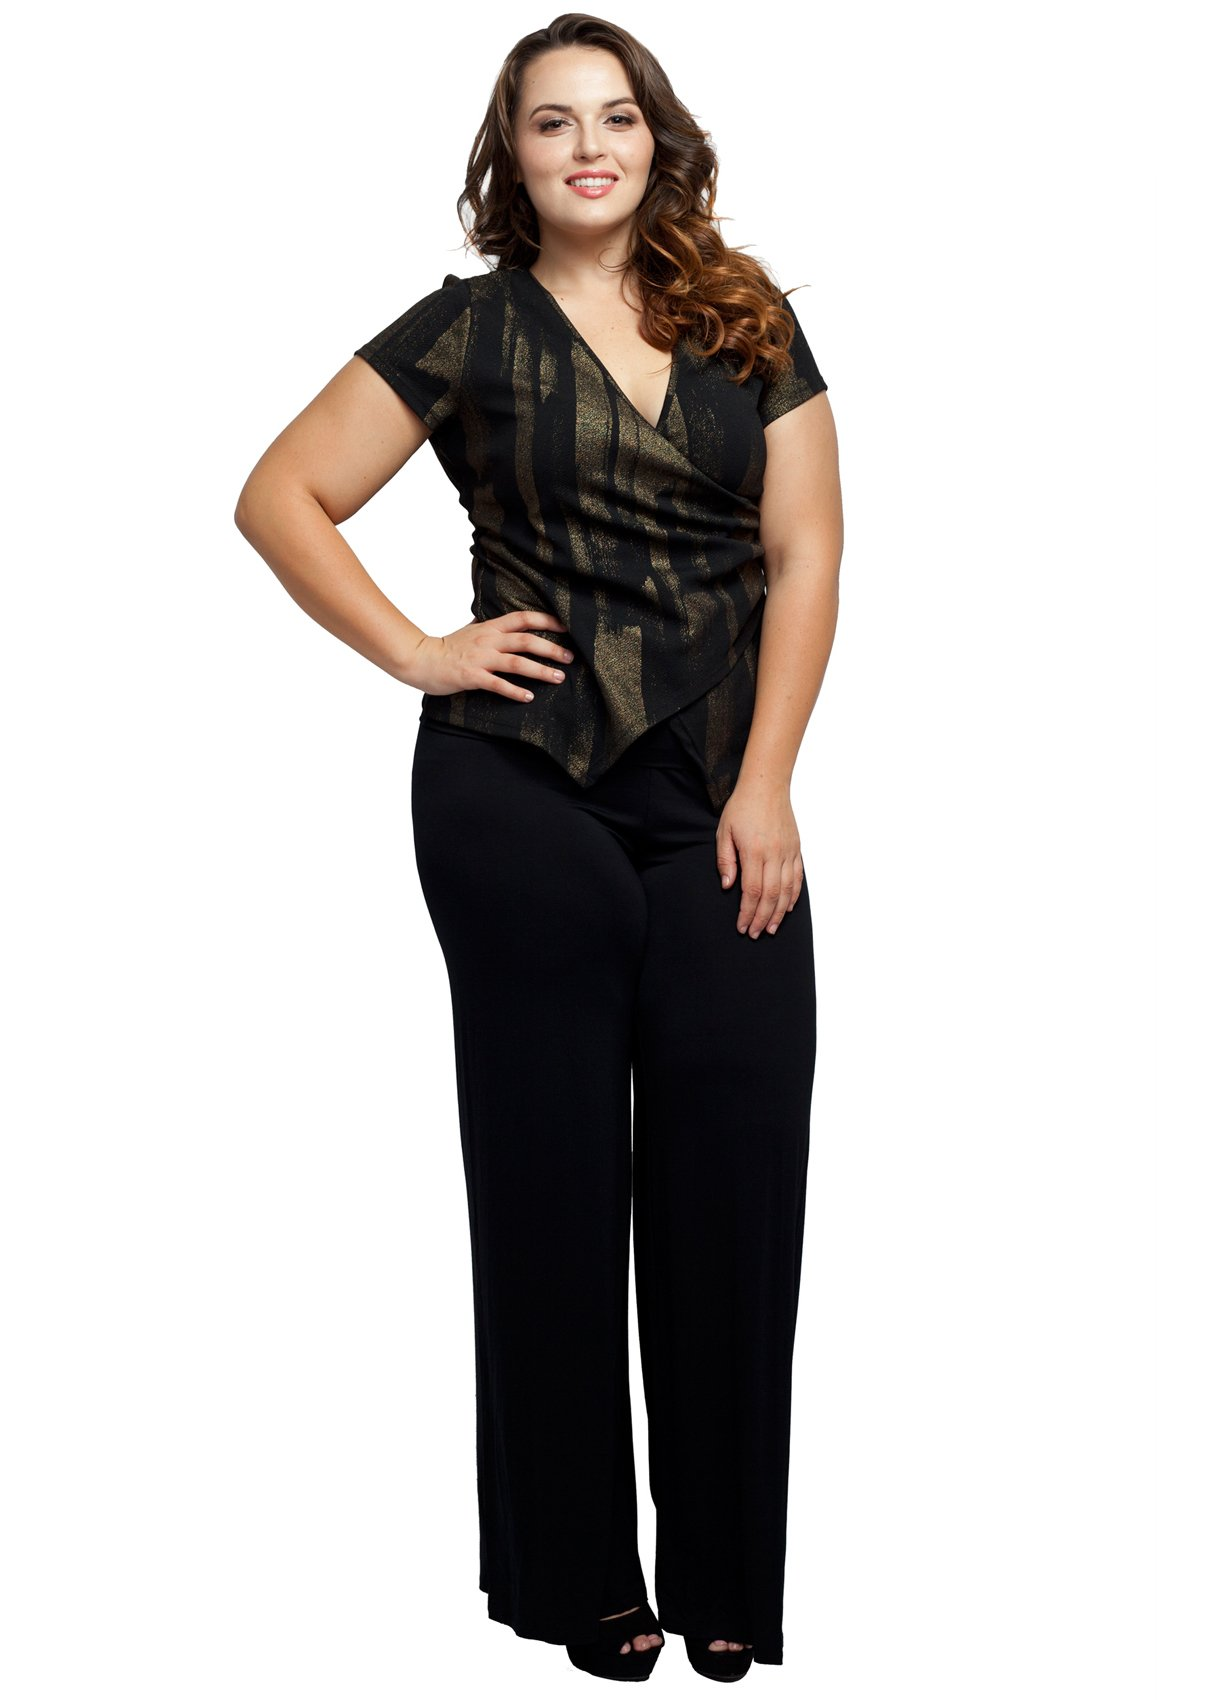 Stylzoo Women's Premium Modal Softest Ever Palazzo Solid Stretch Pants Black Regular 2X by Stylzoo (Image #2)